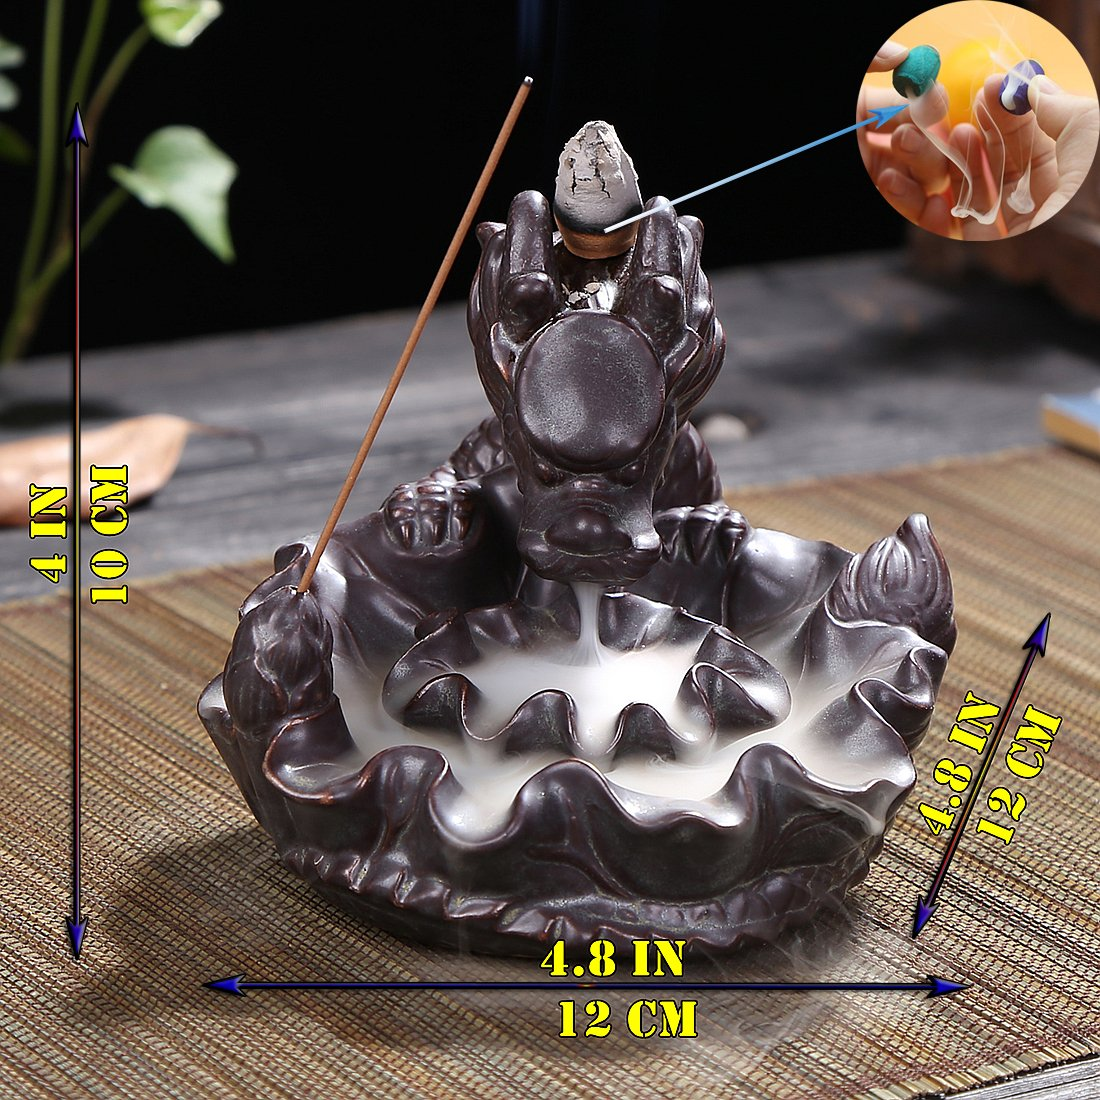 OTOFY Handmade Ceramic Incense Holder, Backflow Incense Burner Figurine Incense Cone Holders Home Decor Gift Decorations Statue Ornaments (Auspicious Dragon)